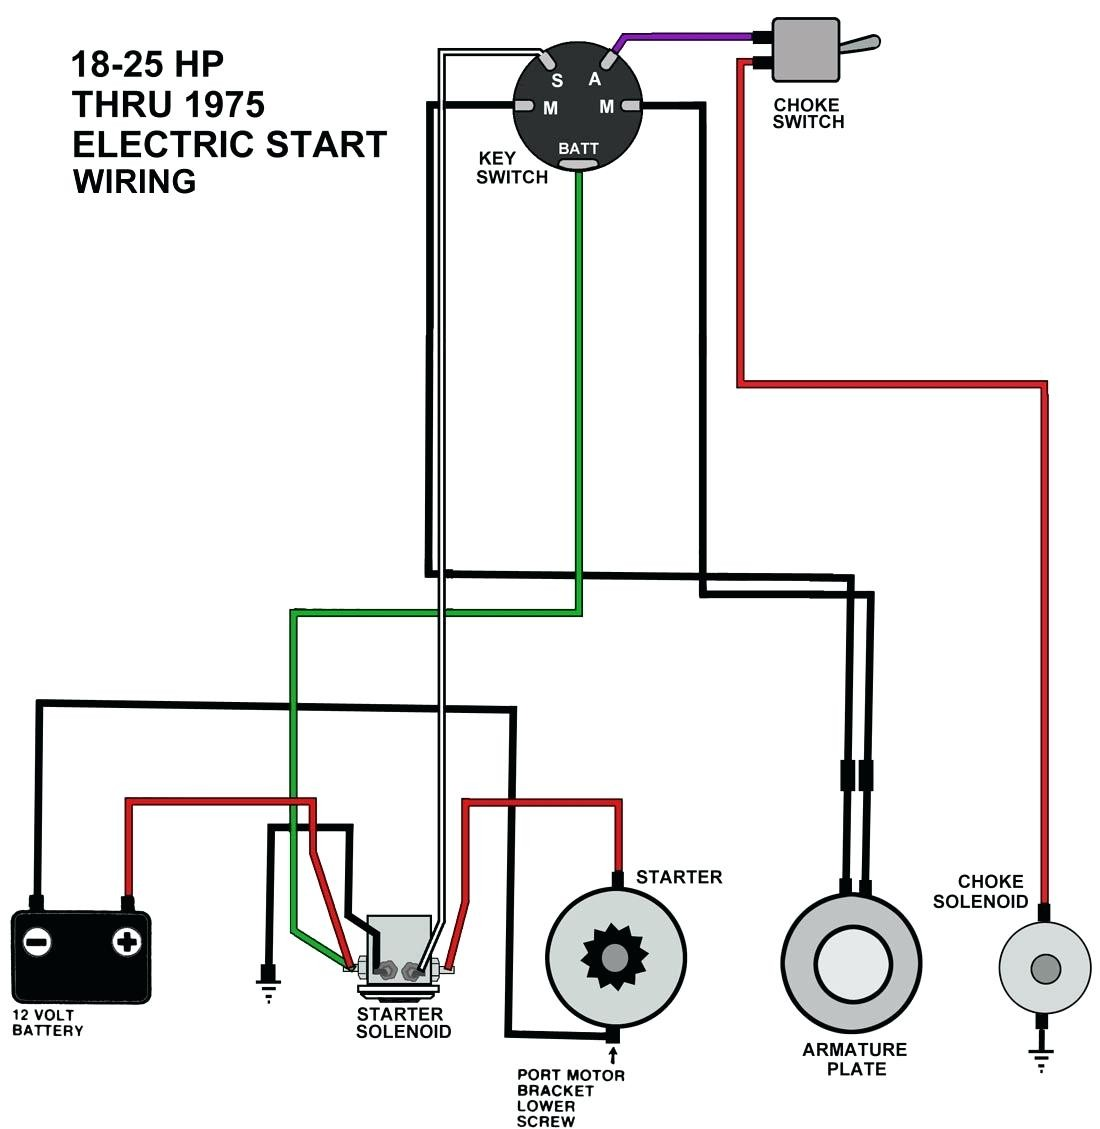 Mercury Outboard Kill Switch Diagram | Wiring Schematic ... on